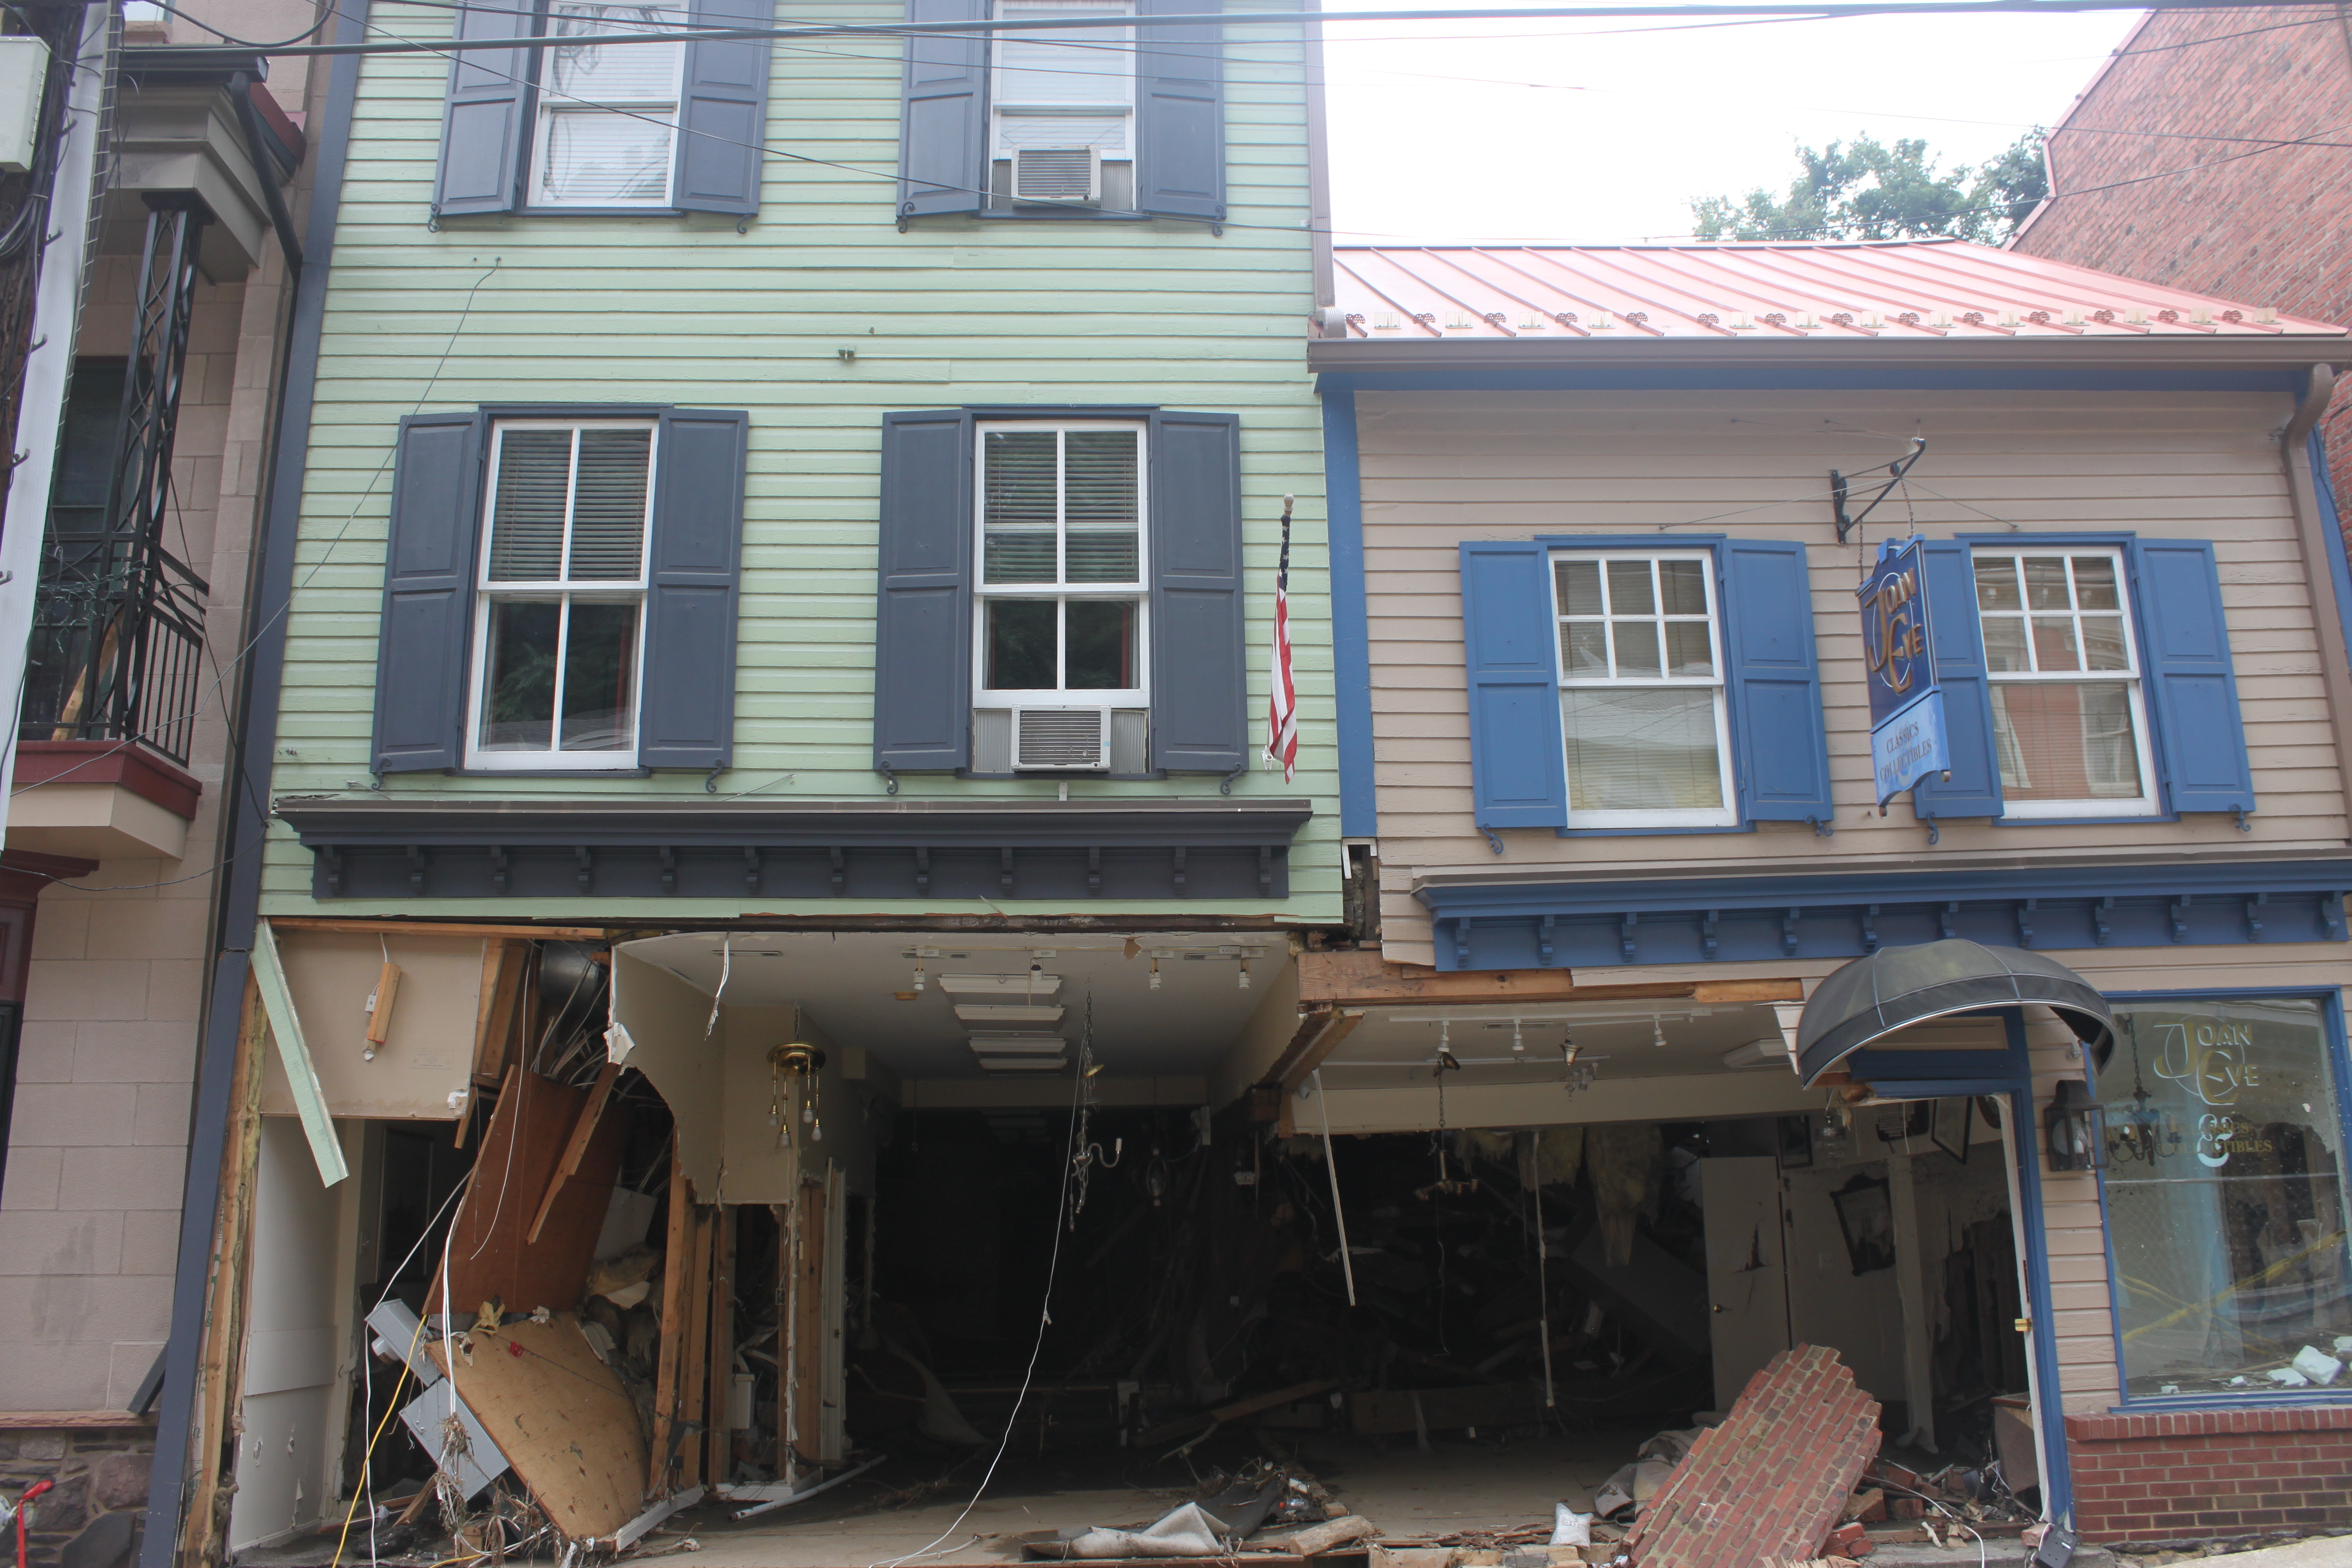 Some of the oldest buildings in Ellicott City, damaged by the flood.